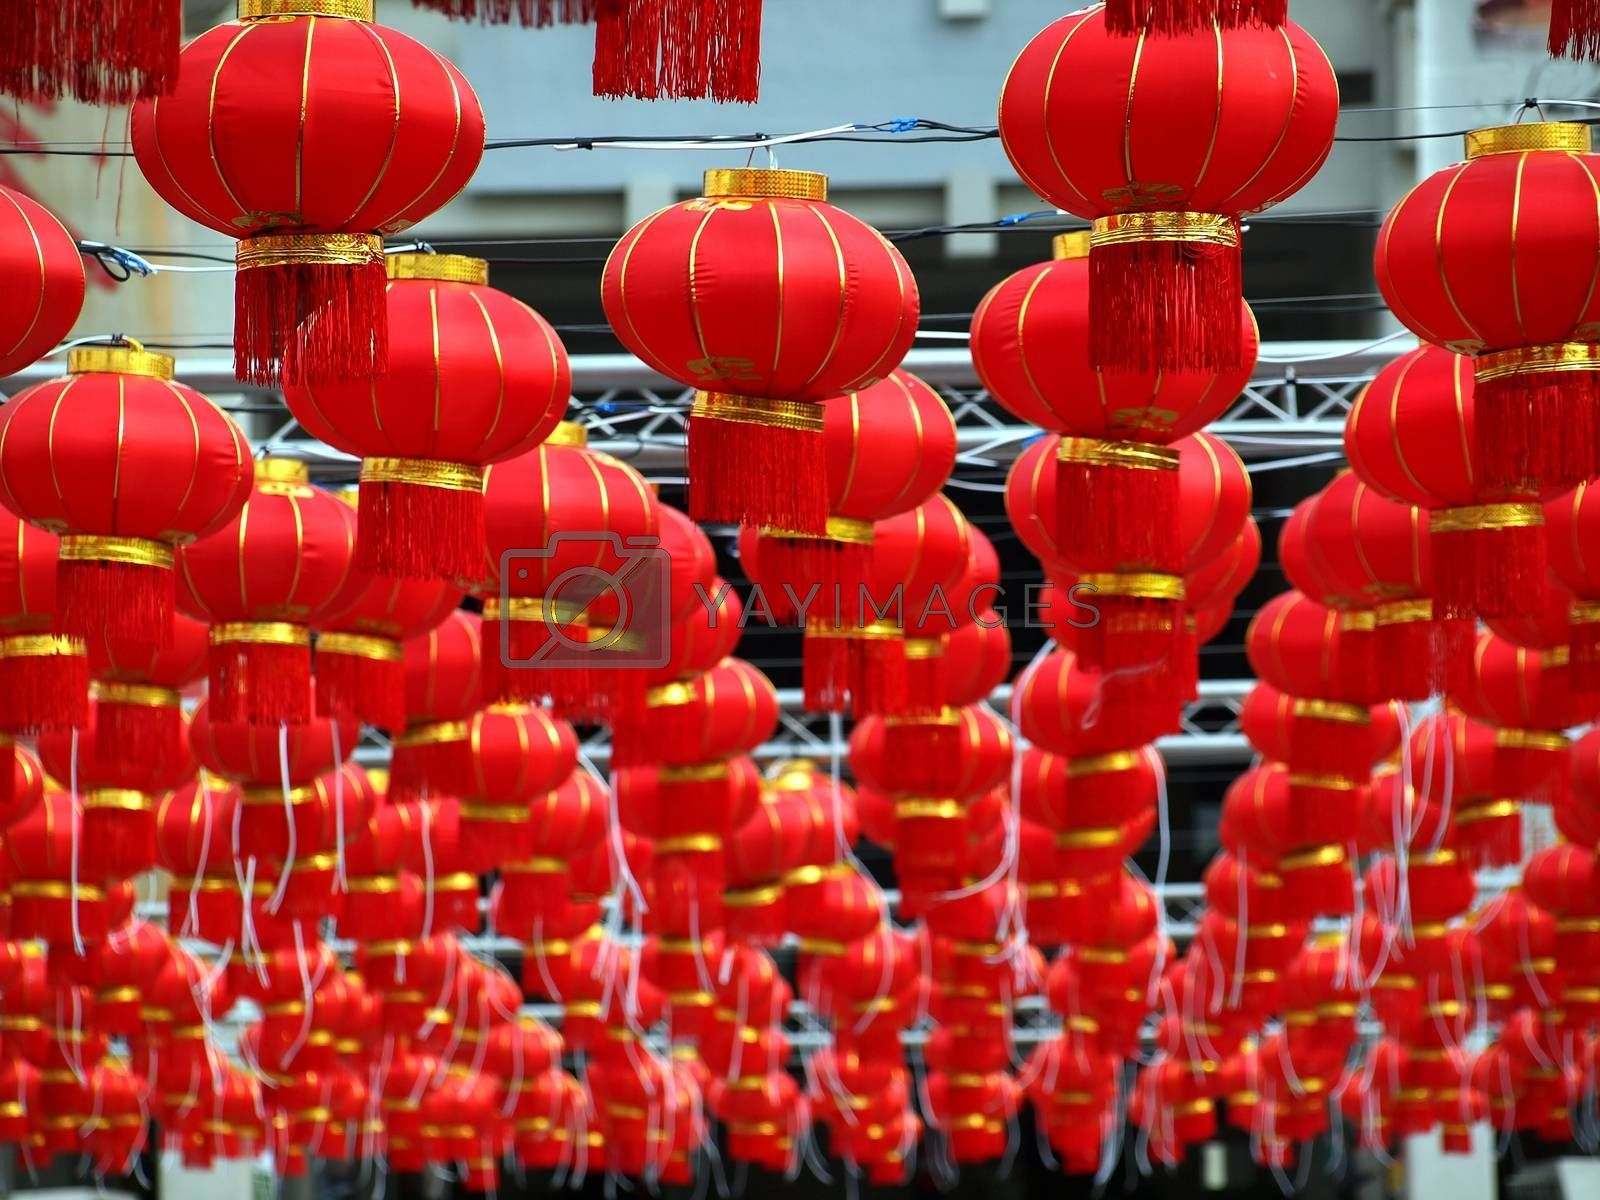 A sea of traditional Chinese lanterns at an outdoor feast